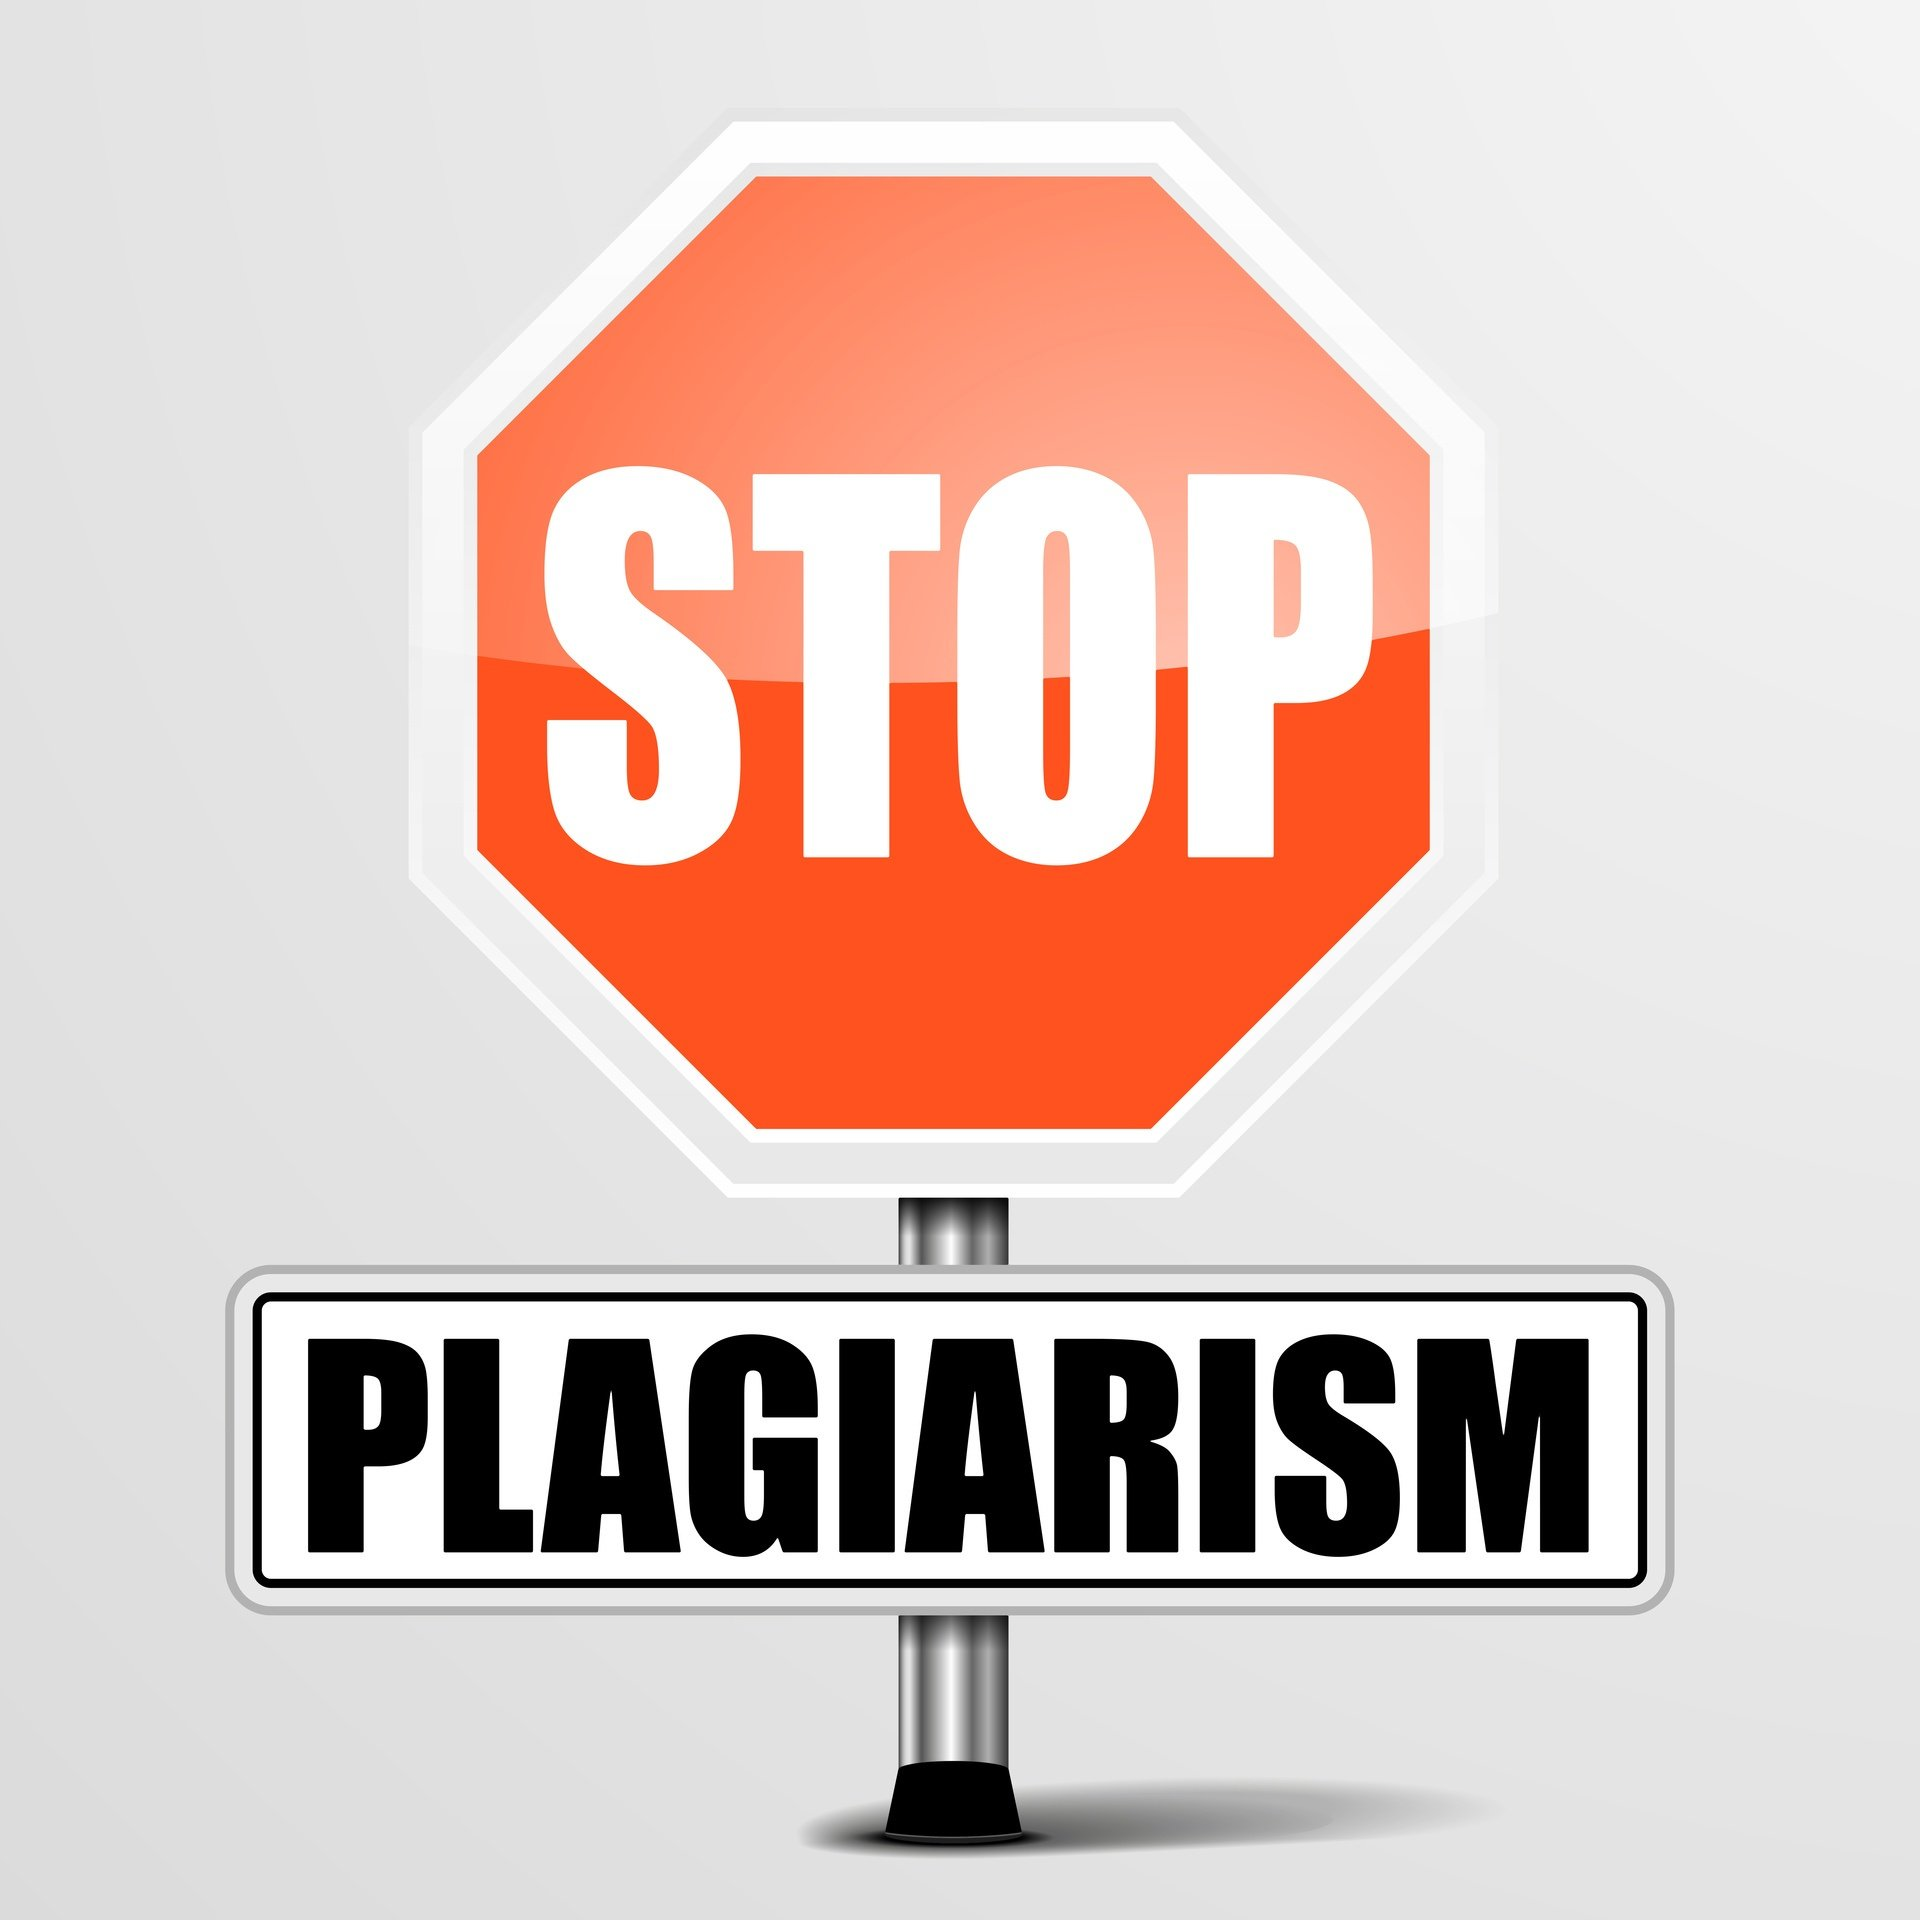 check my assignment for plagiarism user profile help writing  how do instructors check for plagiarism plagiarism checker multilingual plagiarism check inside higher ed plagiarism checker